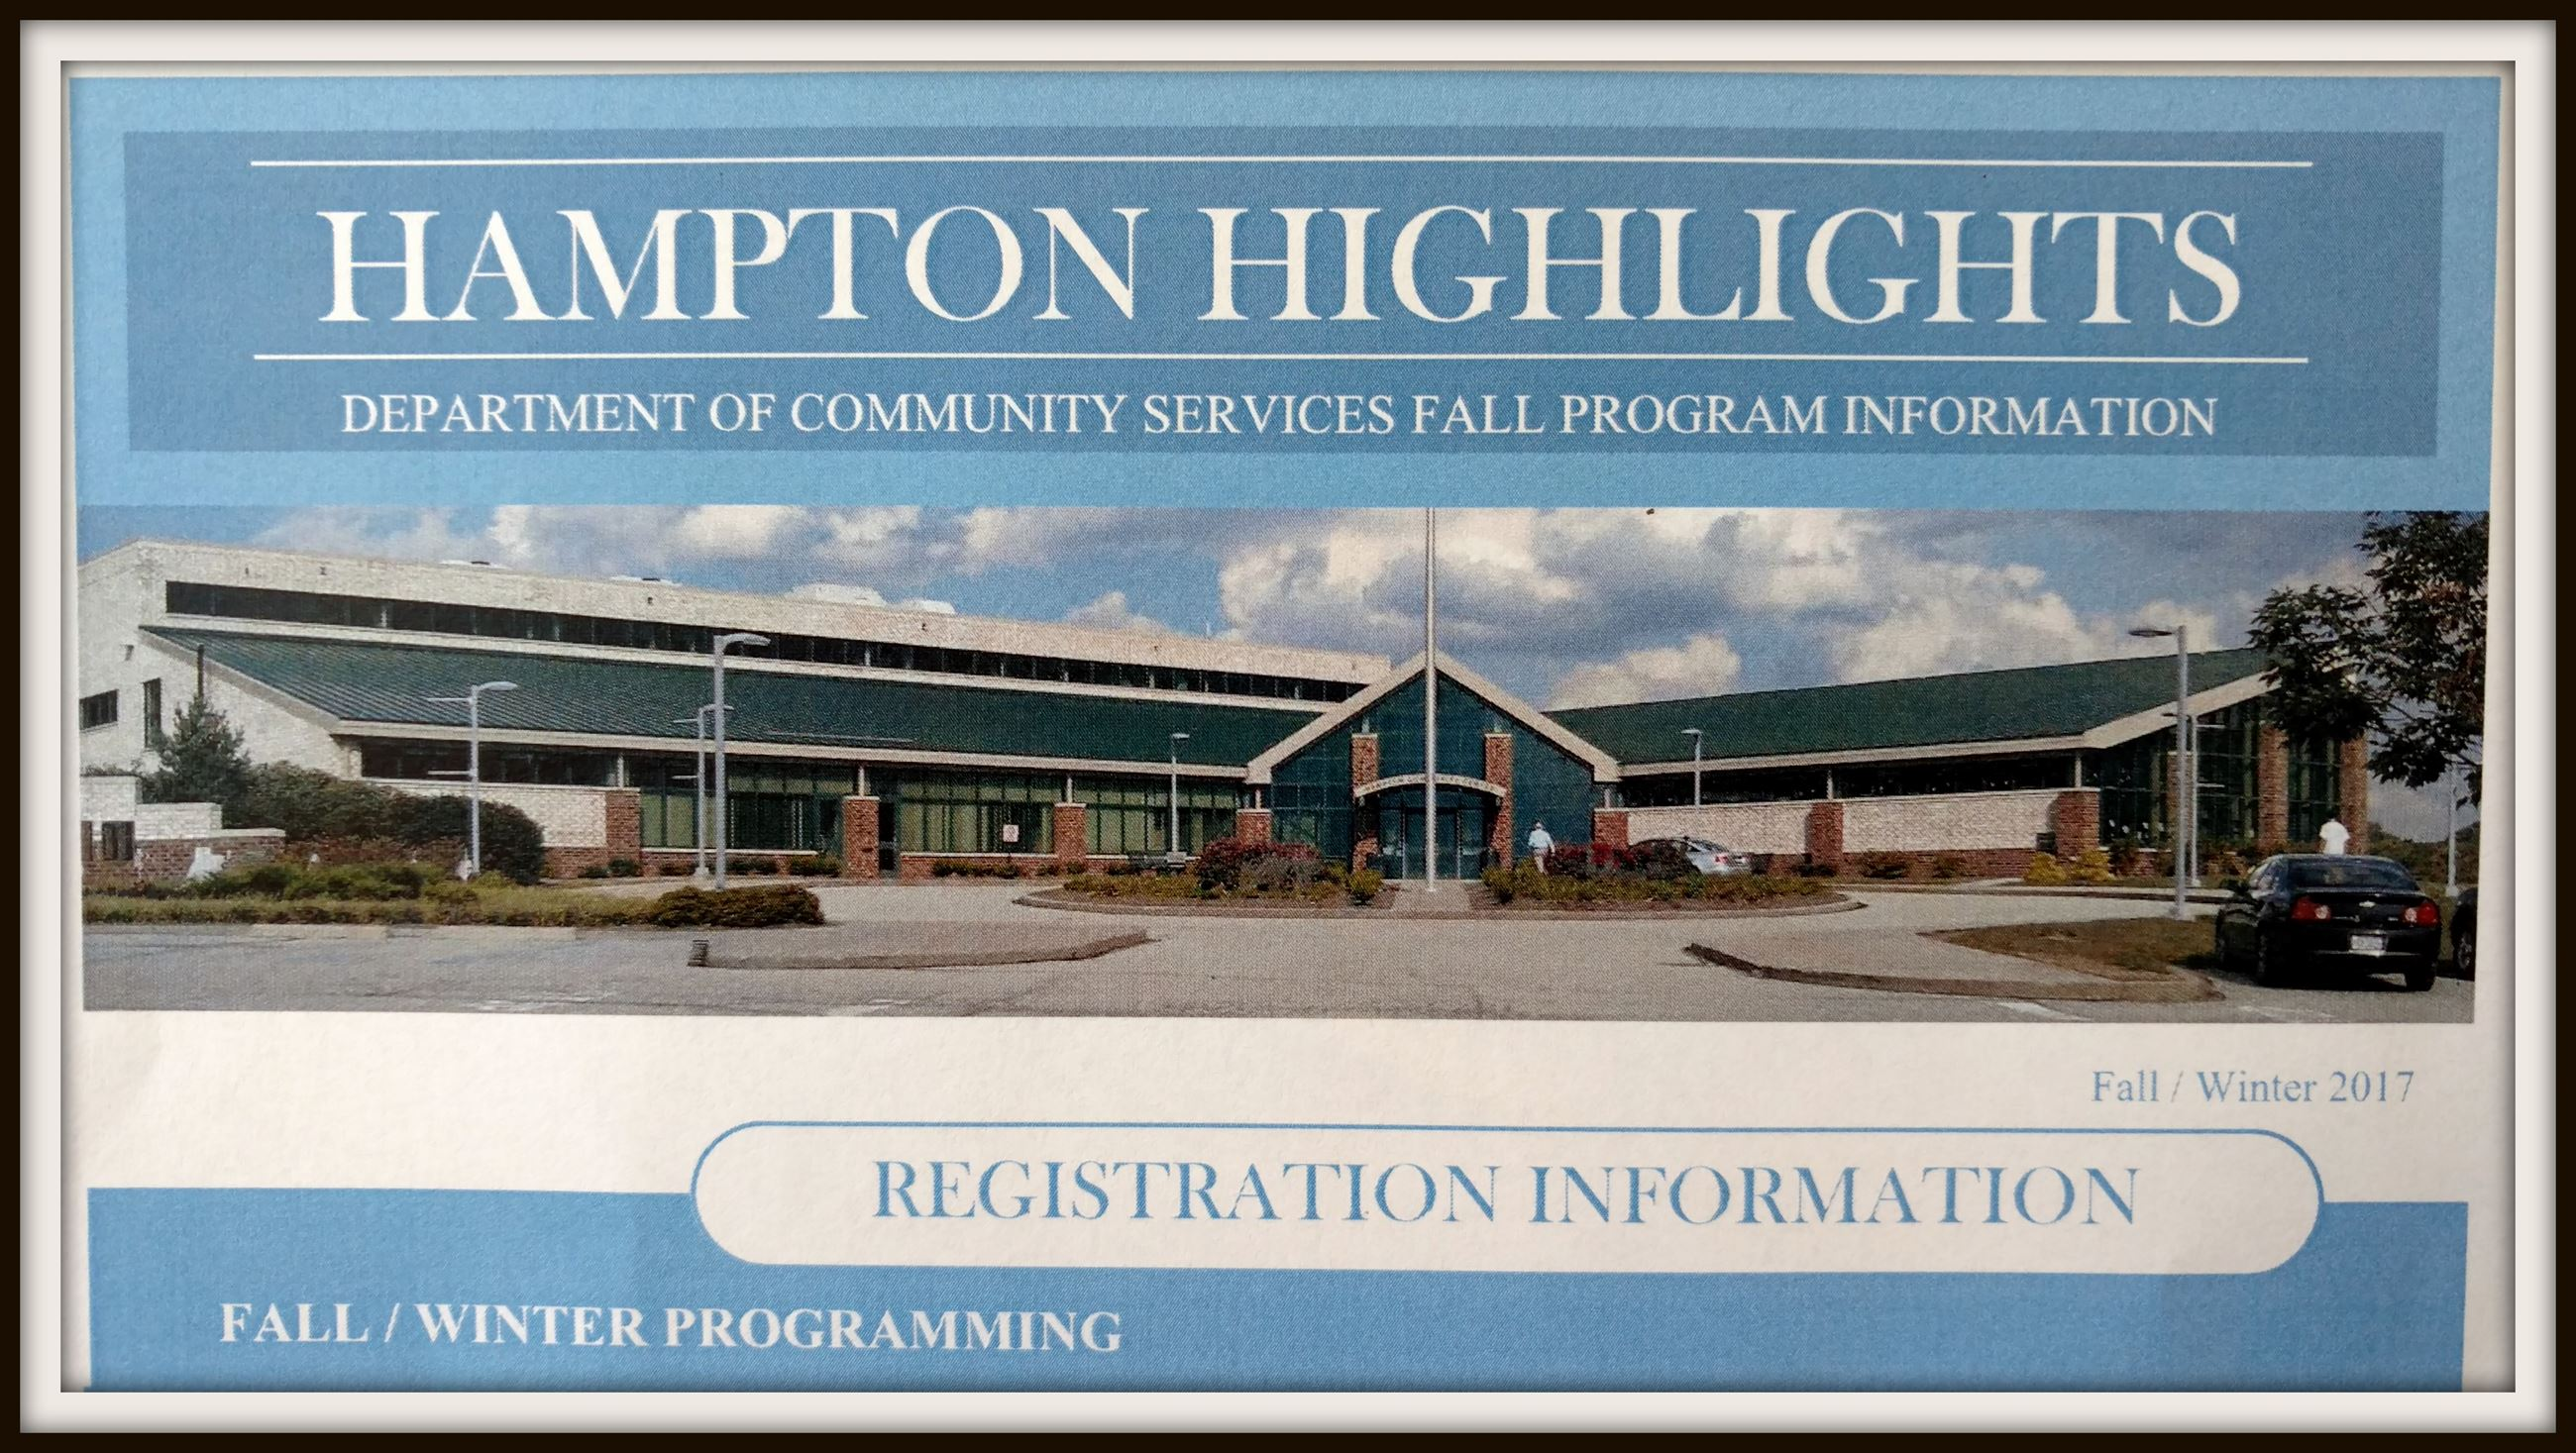 Hampton Highlights fall 2017